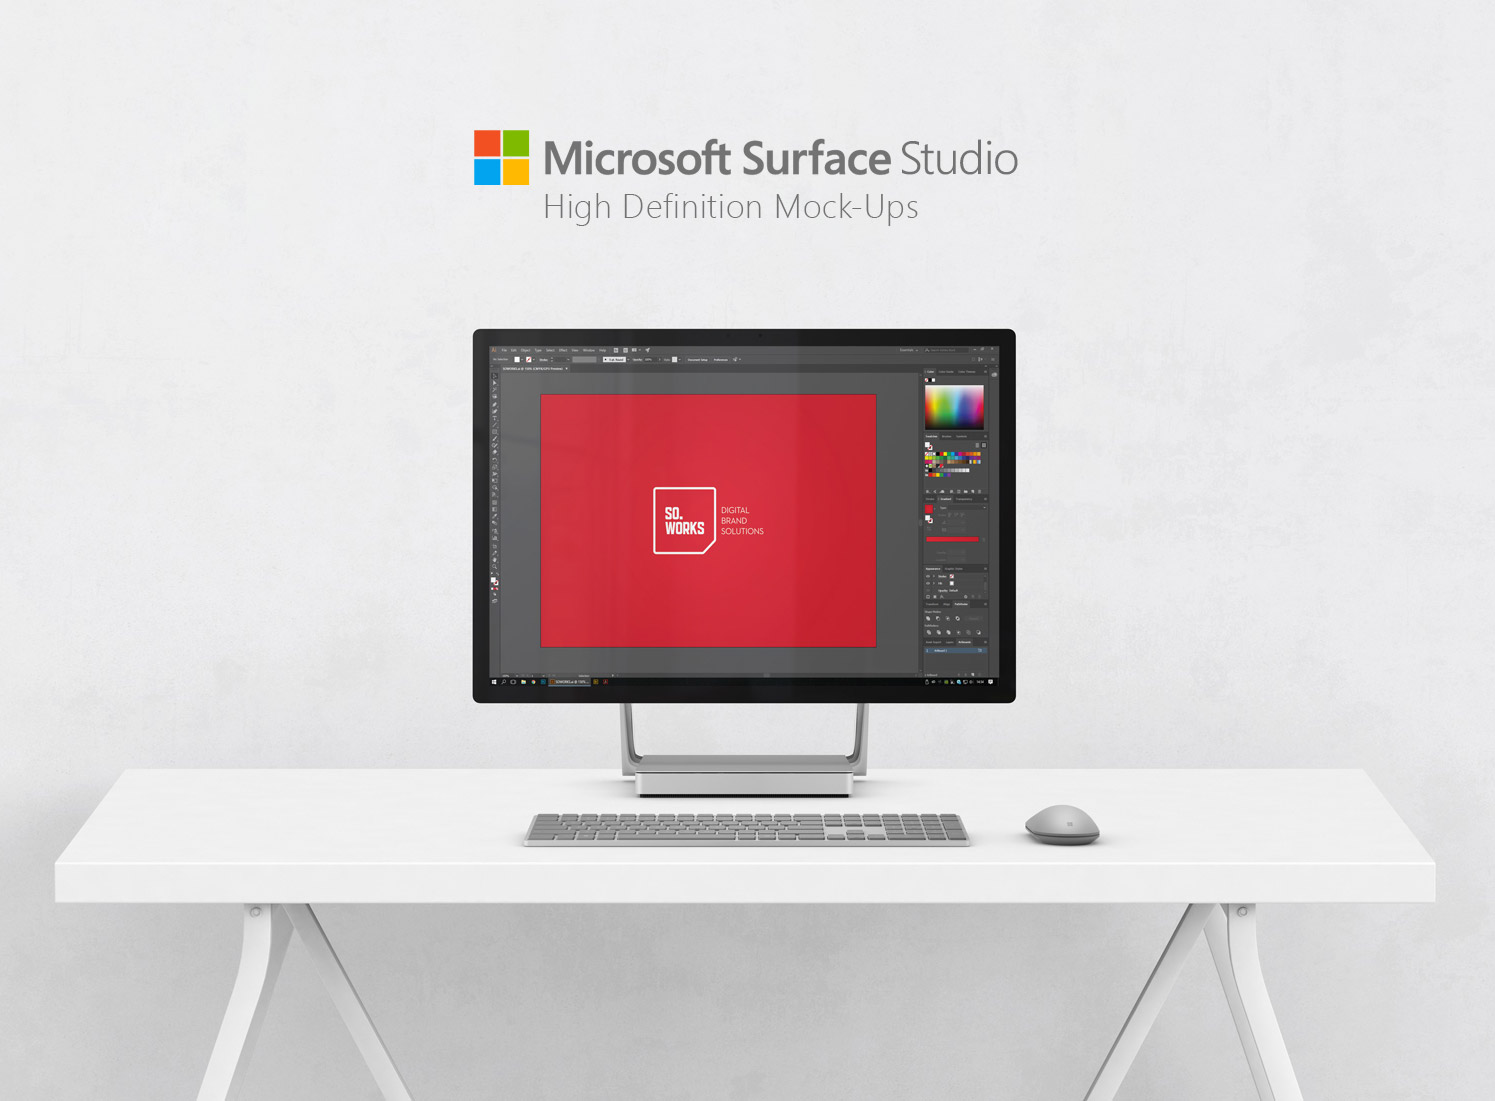 Download Microsoft Surface Studio on Desk Mockup Free PSD